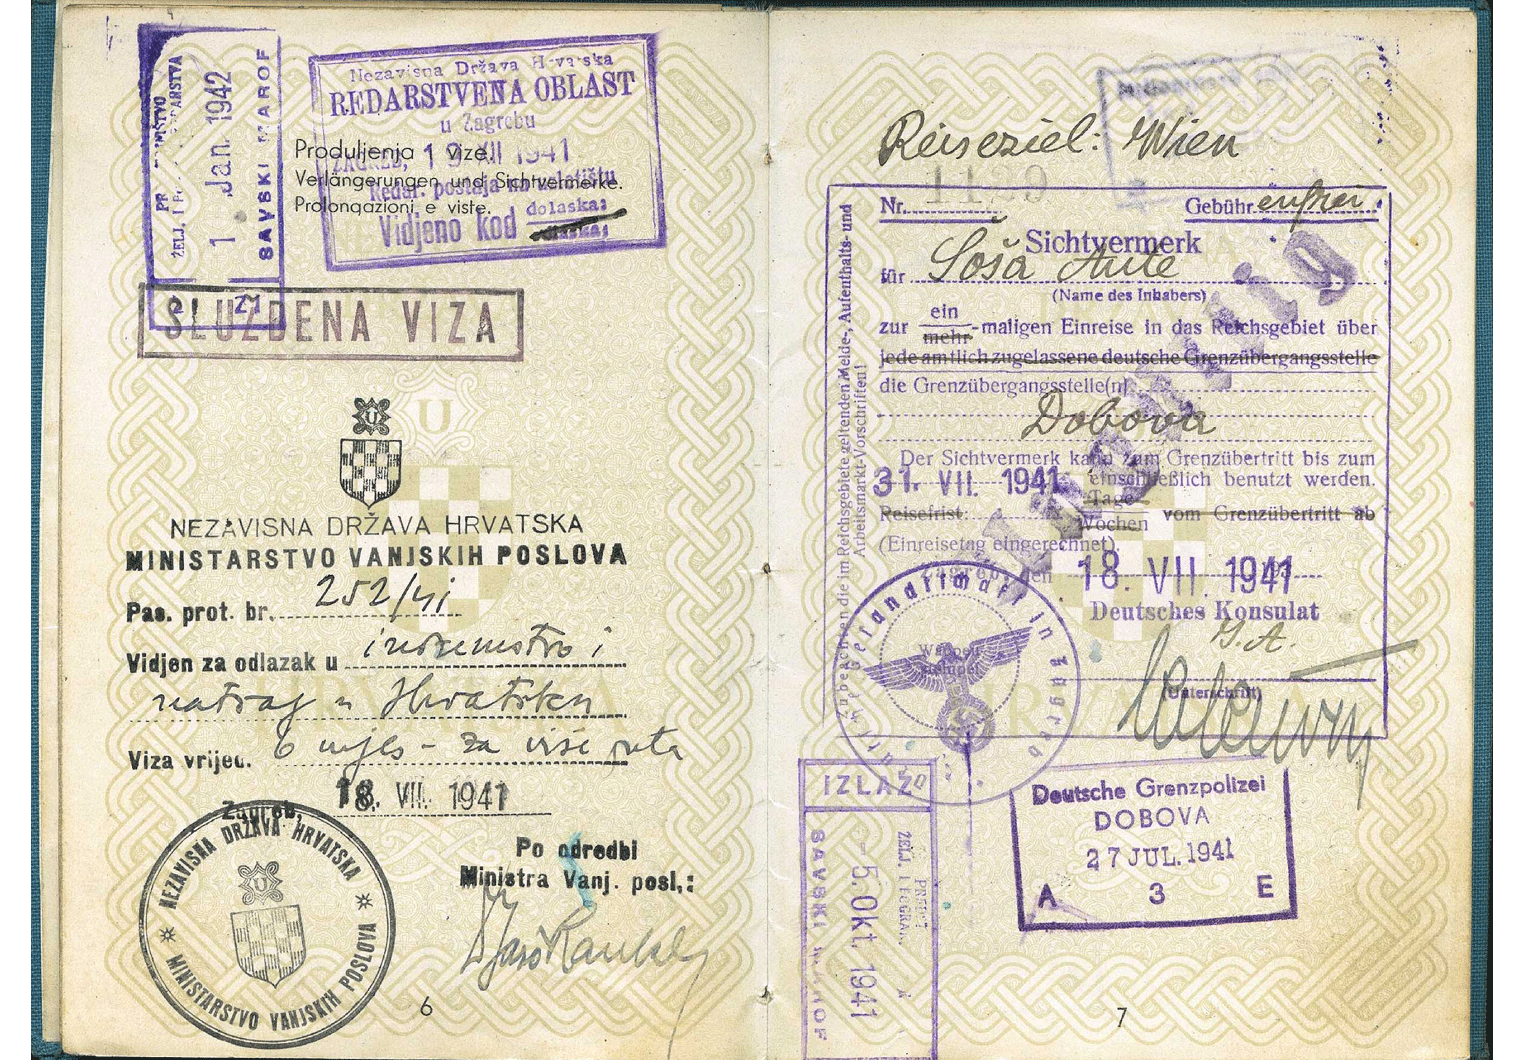 WW2 Croatian Service-Passport